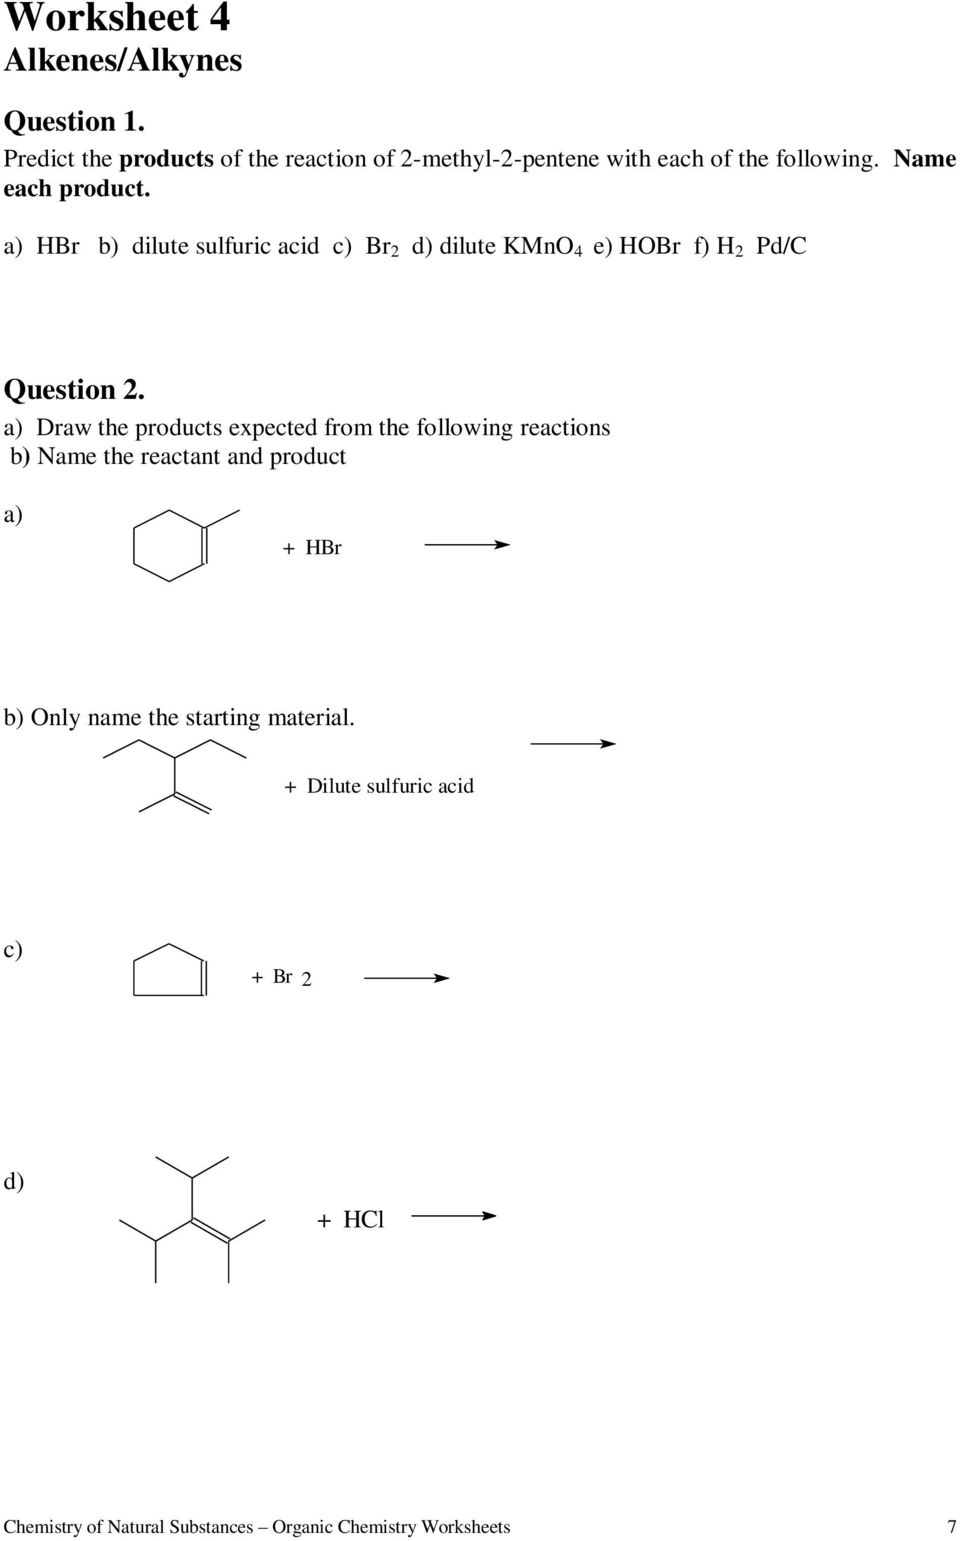 worksheet Chemistry Dimensions 2 Worksheet Solutions worksheets for organic chemistry pdf a h b dilute sulfuric acid c 2 d kmno 4